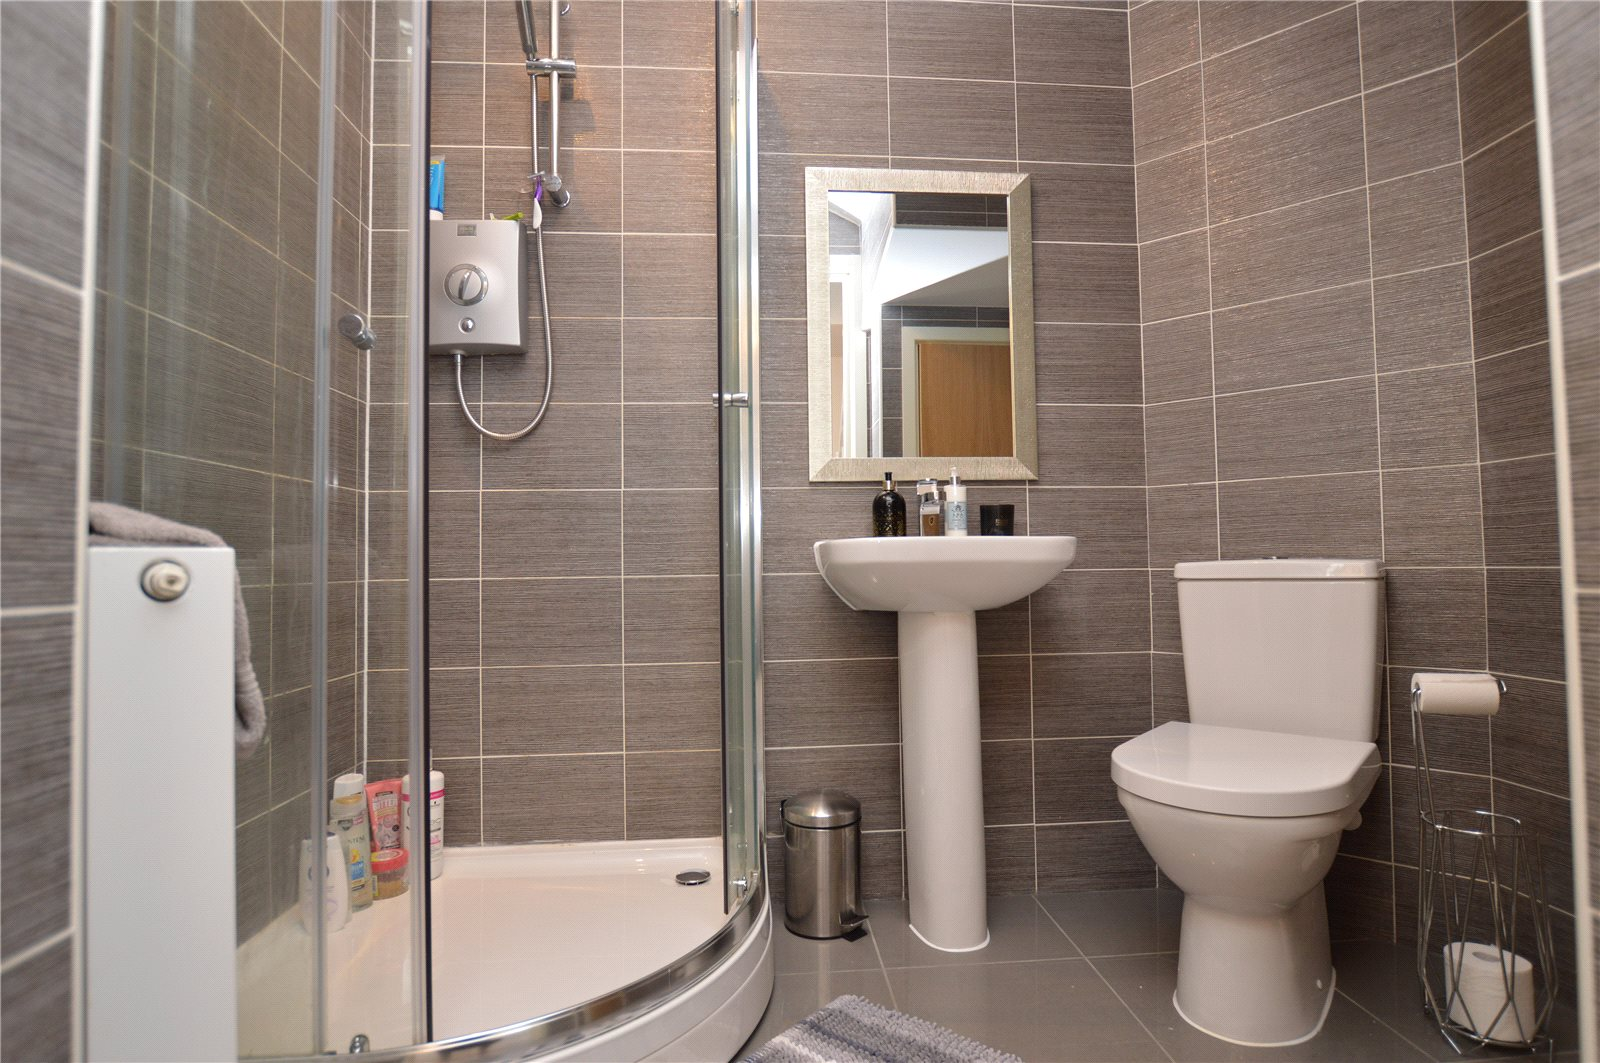 property for sale in crossgates, bathroom